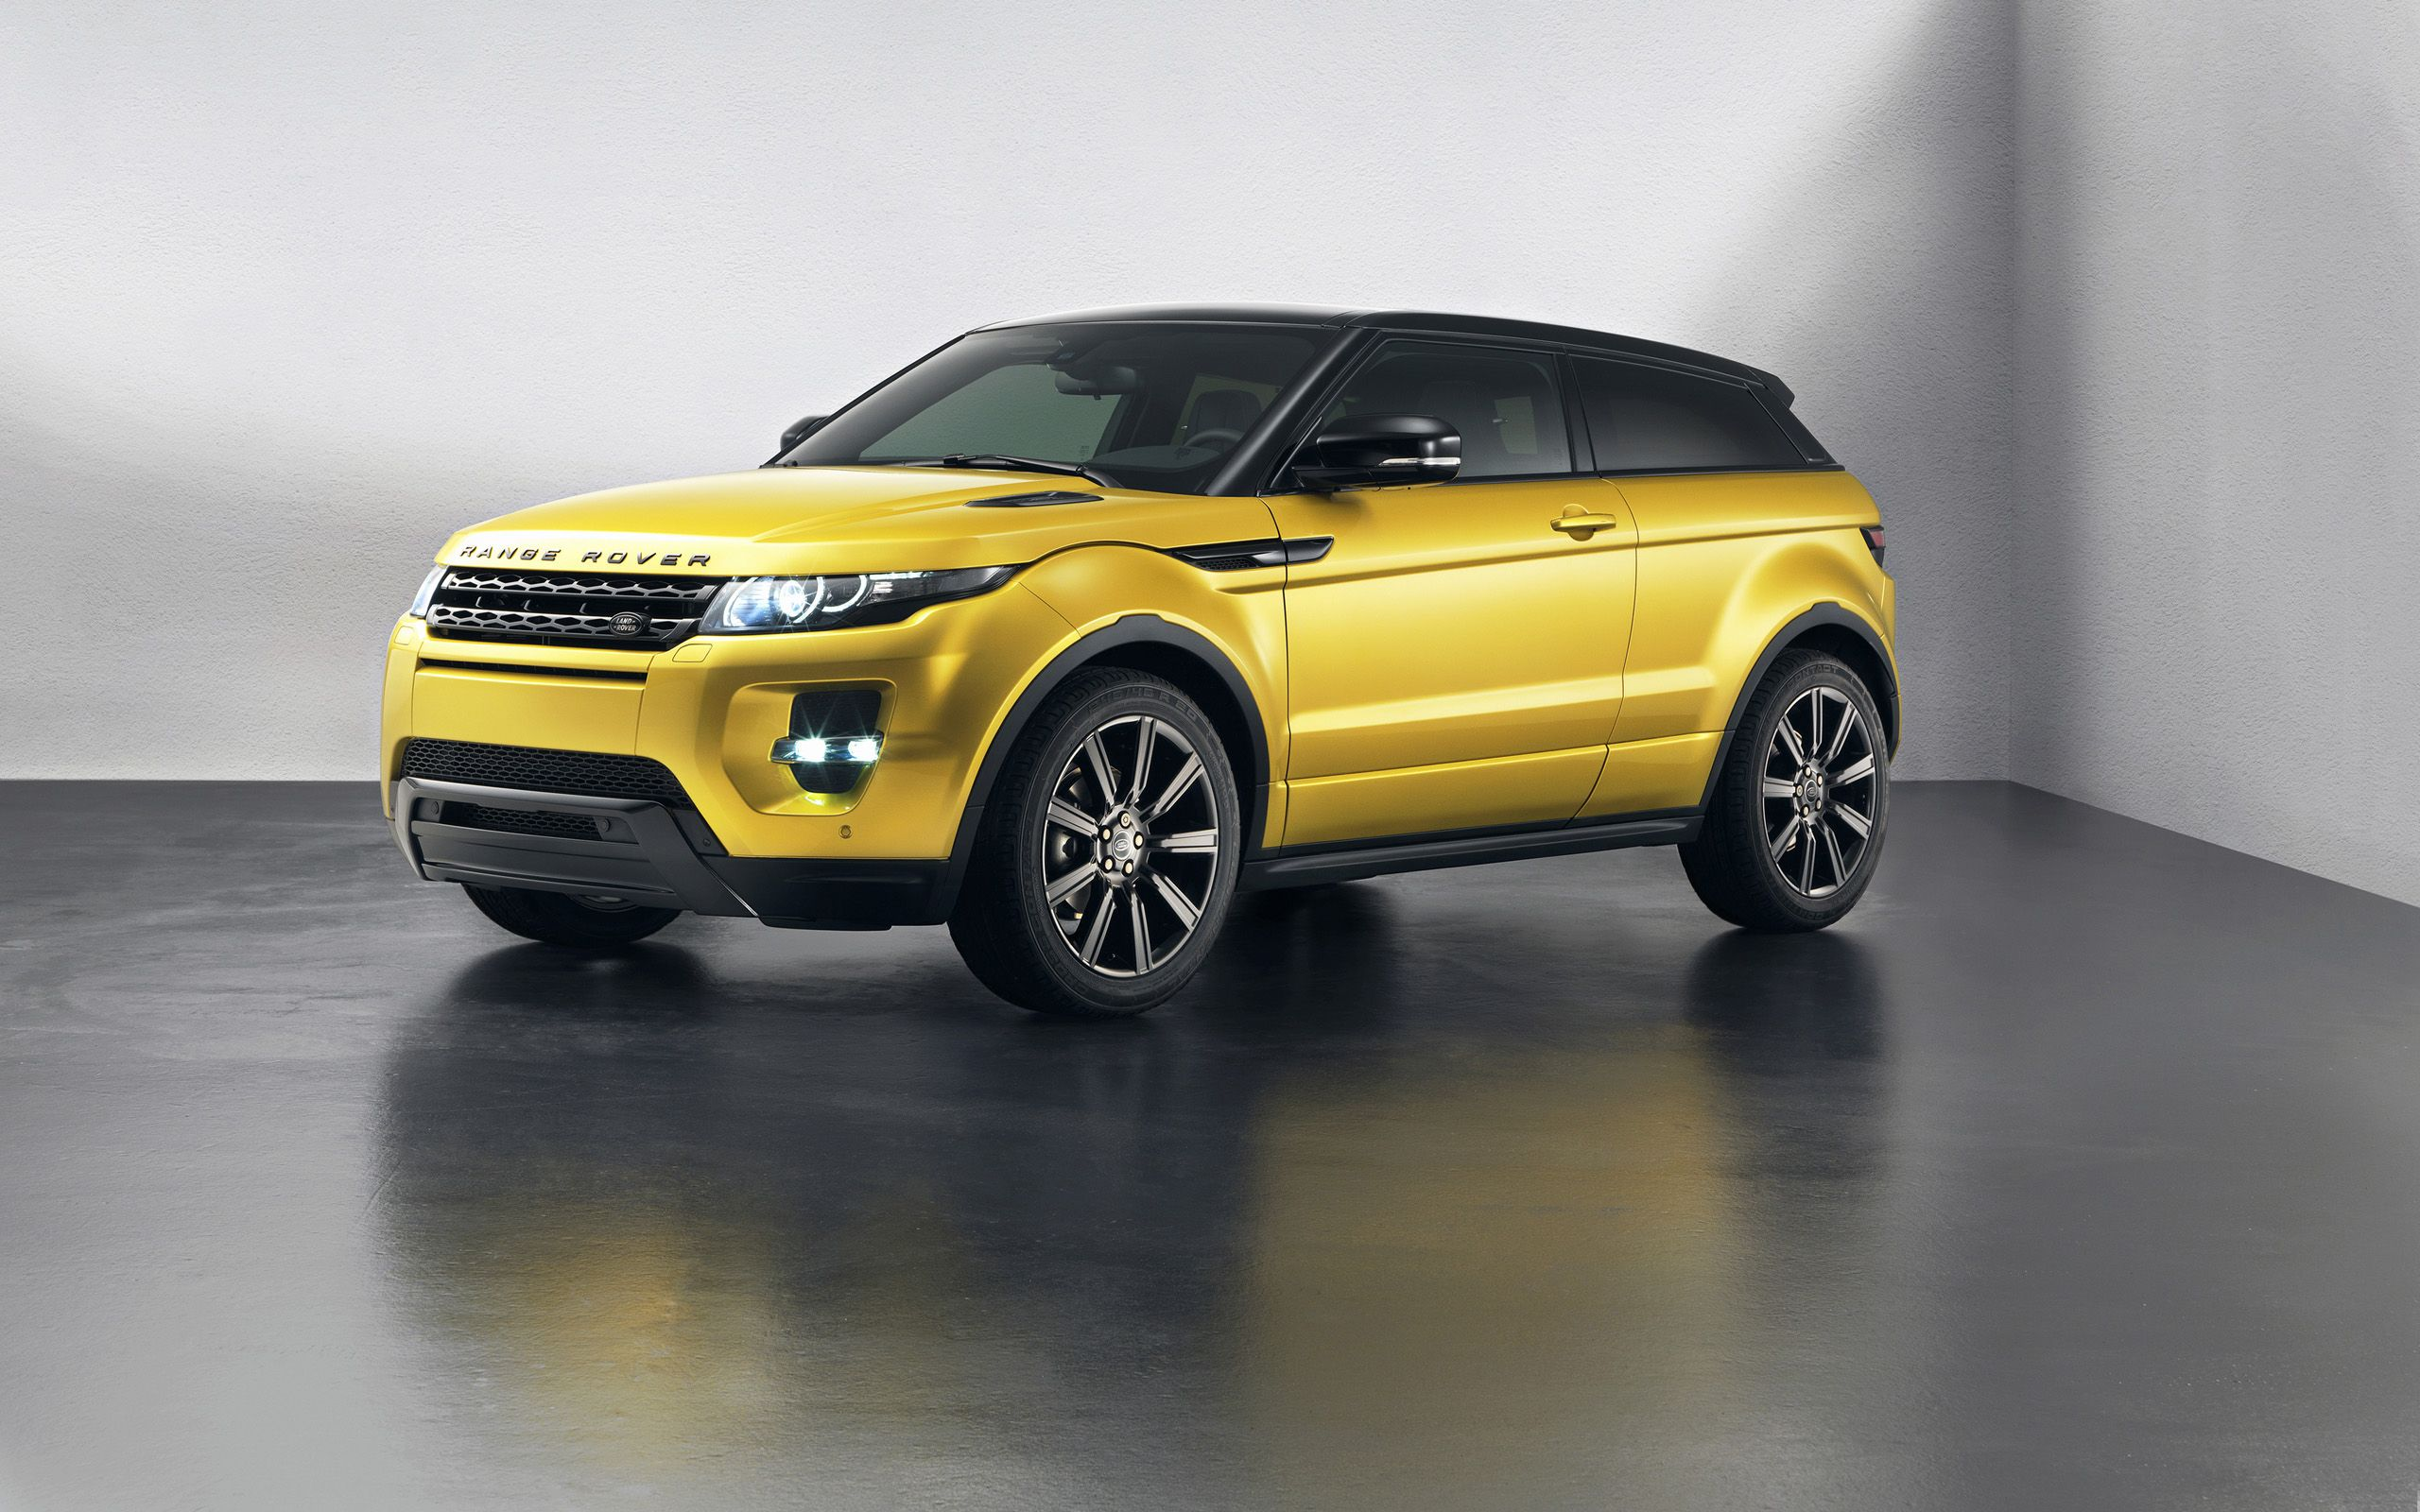 2013 range rover evoque limited edition gold the range rover evoque is gearing up for spring with the sicilian yellow limited edition model which makes its